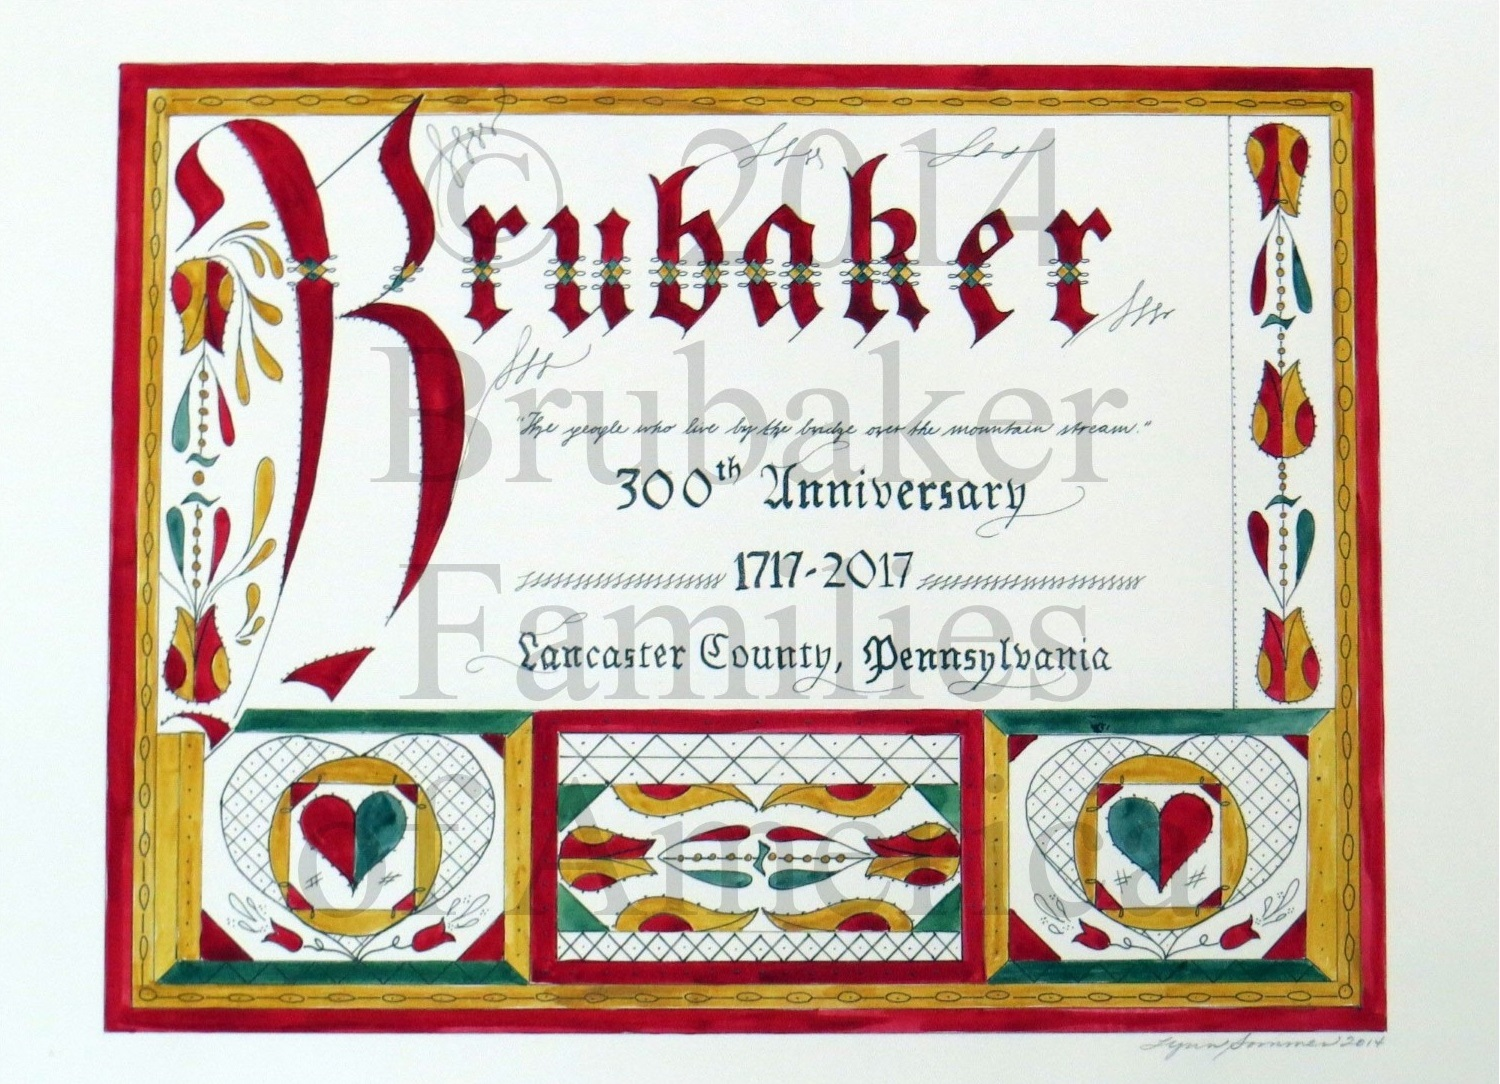 300th Anniversary Limited Edition Commemorative Fraktur